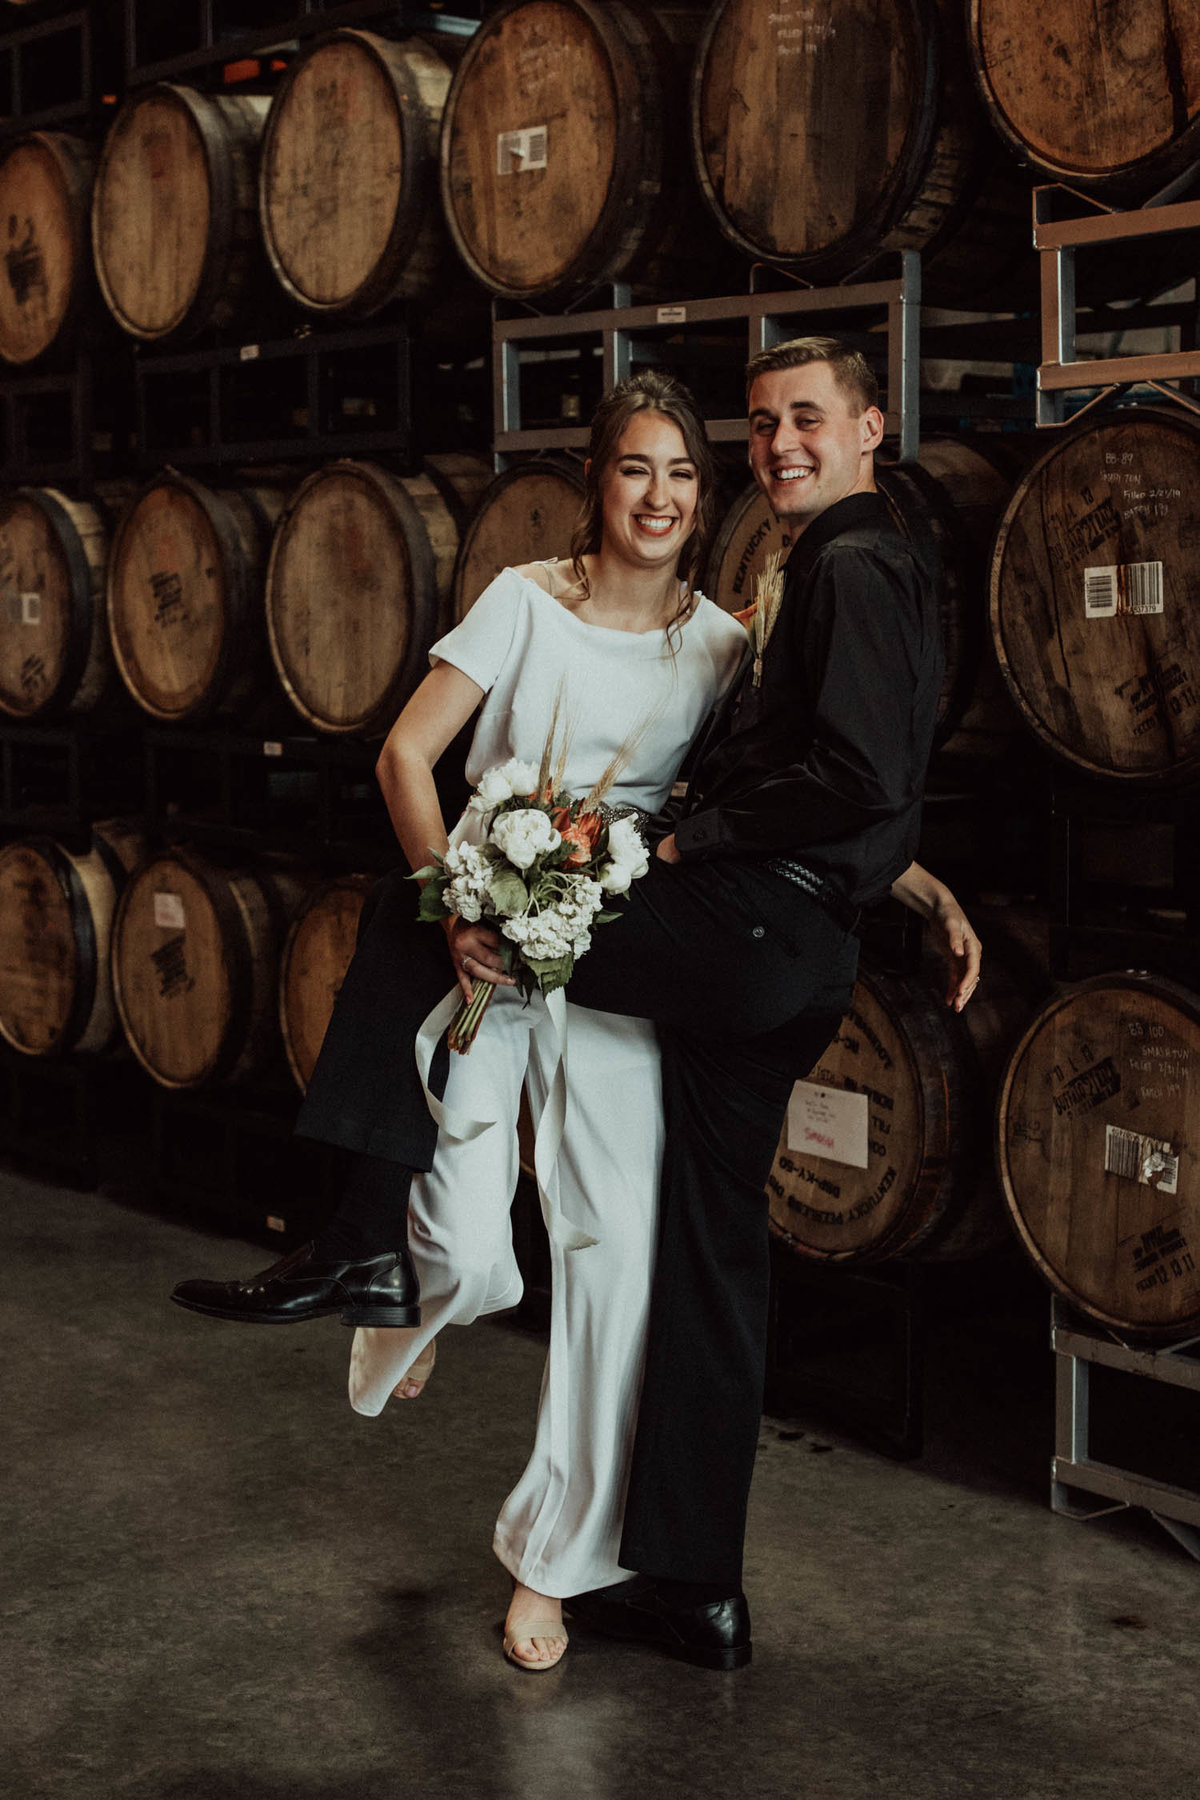 wedding-barrels-brewery-elopement-chicago-il-11